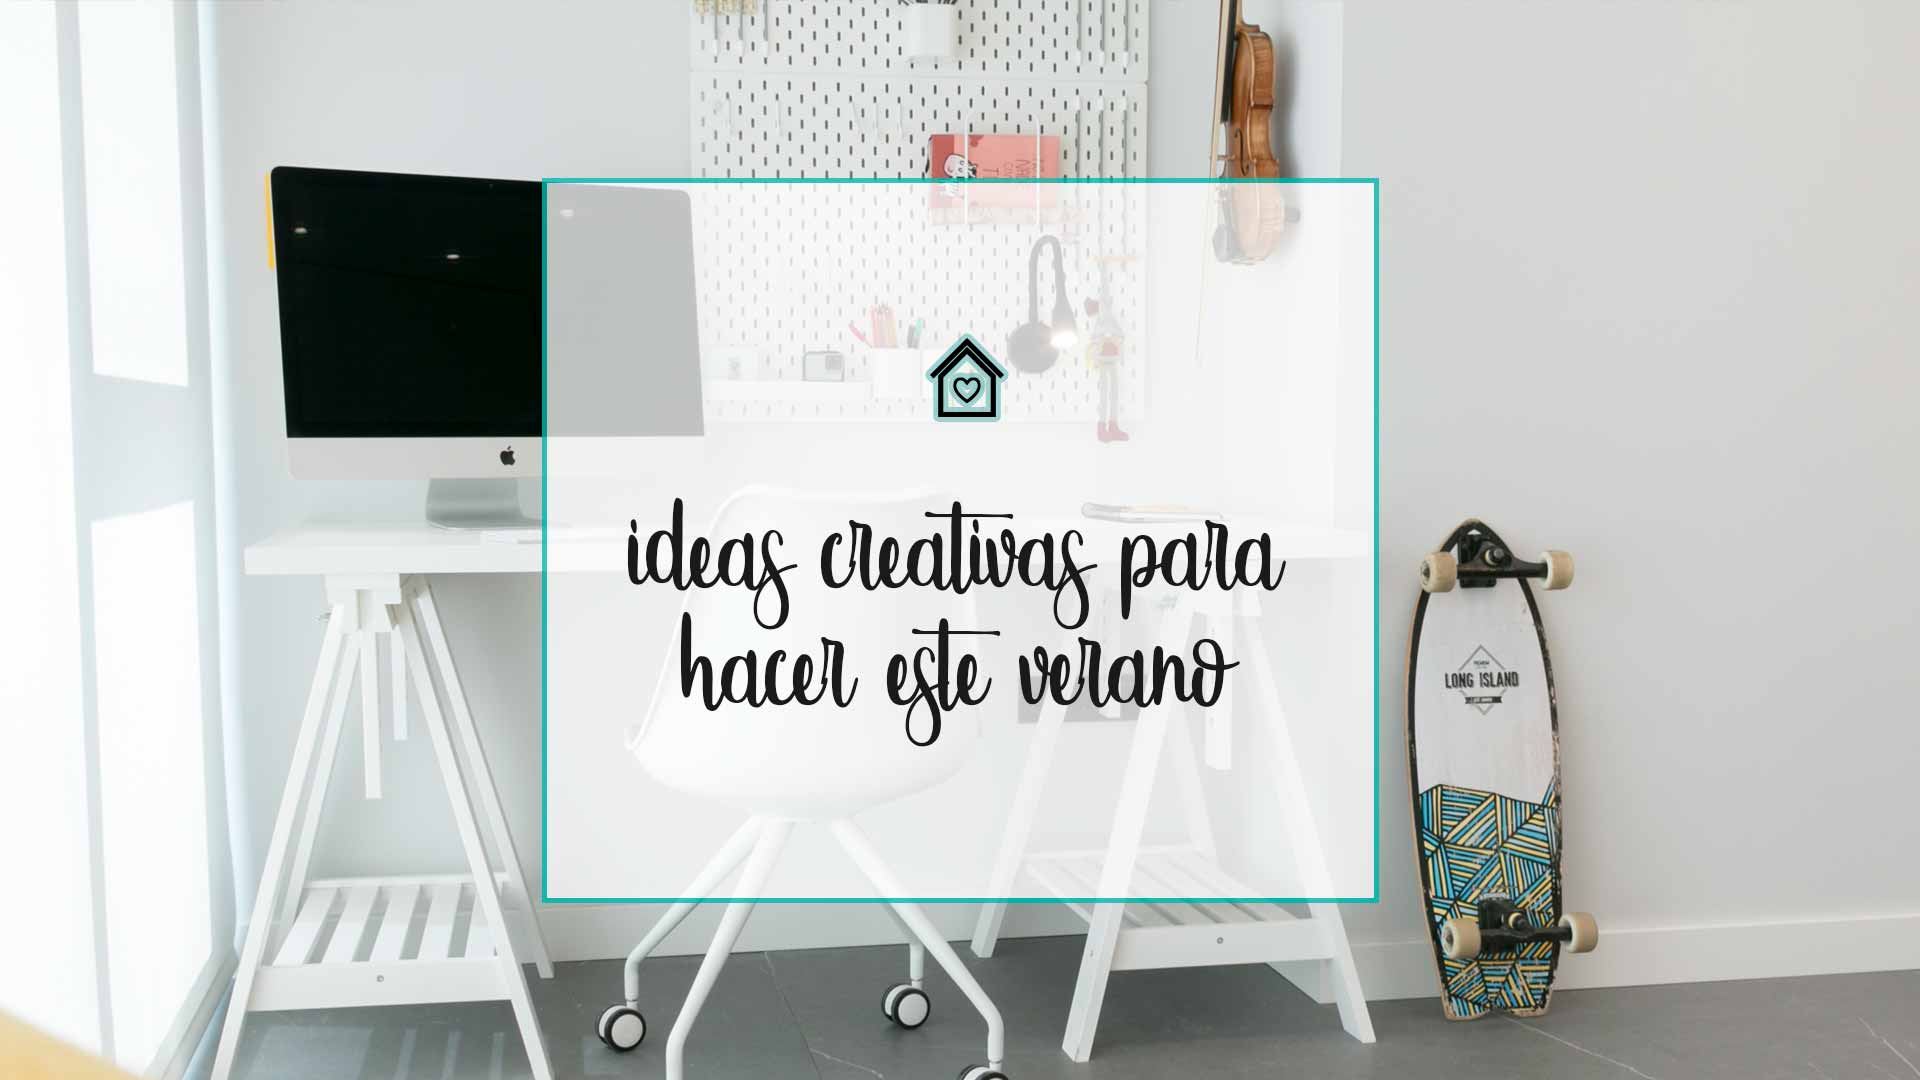 Portadas-para-blog-ideas-creativas-verano